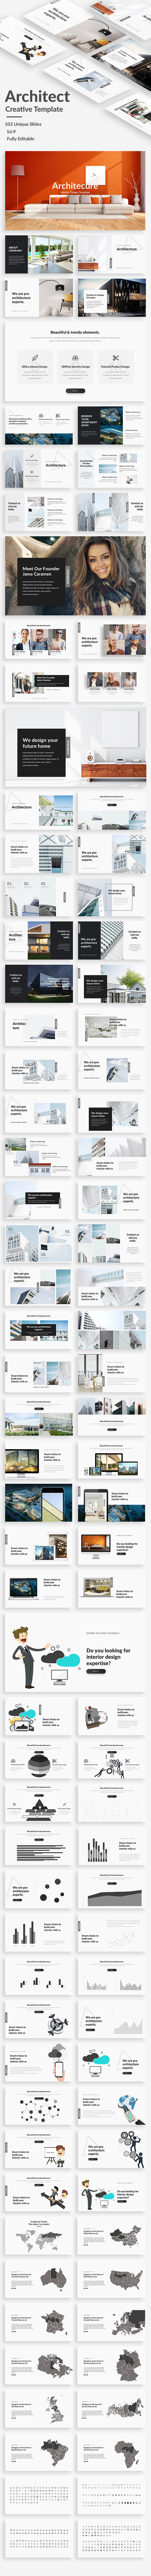 Architecture and Interior Design Keynote - Keynote Templates Presentation Templates